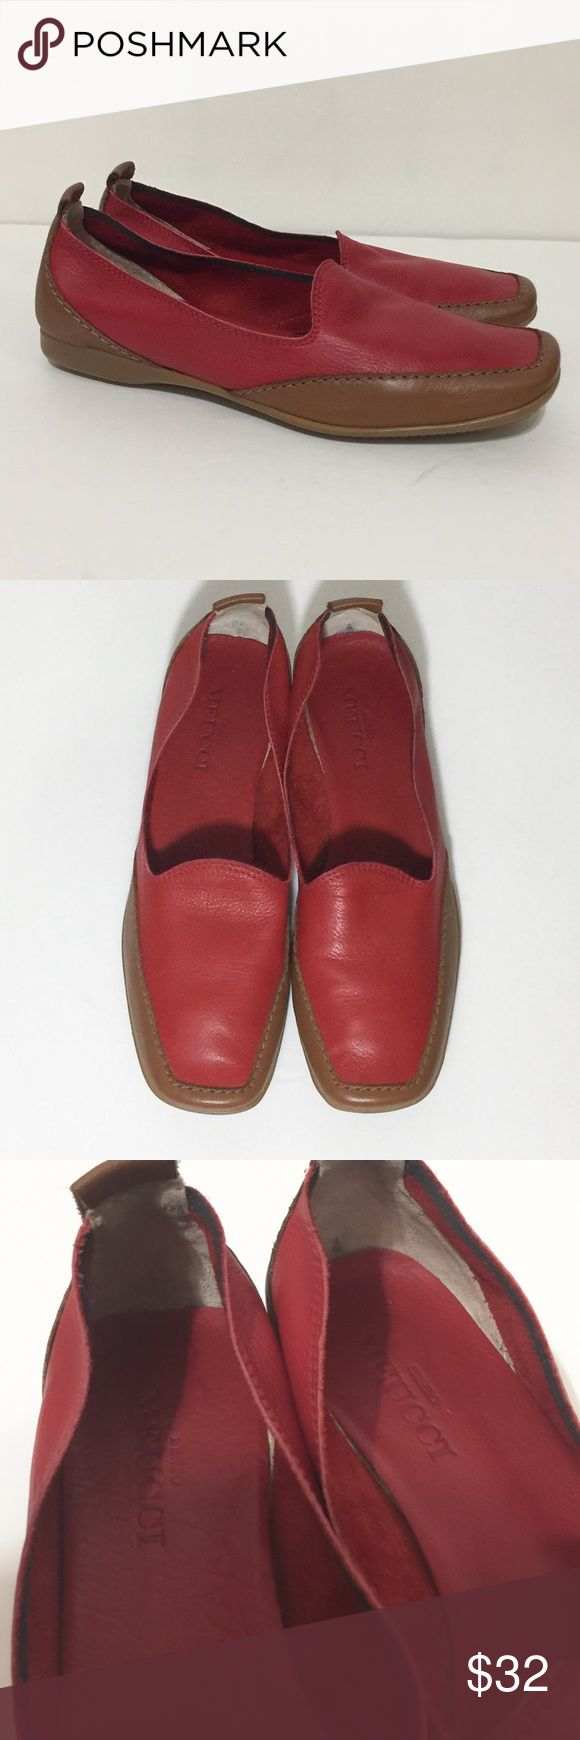 MEUCCI DRIVING LOAFERS Lightly worn. These are 7.5 narrow. sergio meucci Shoes Flats & Loafers